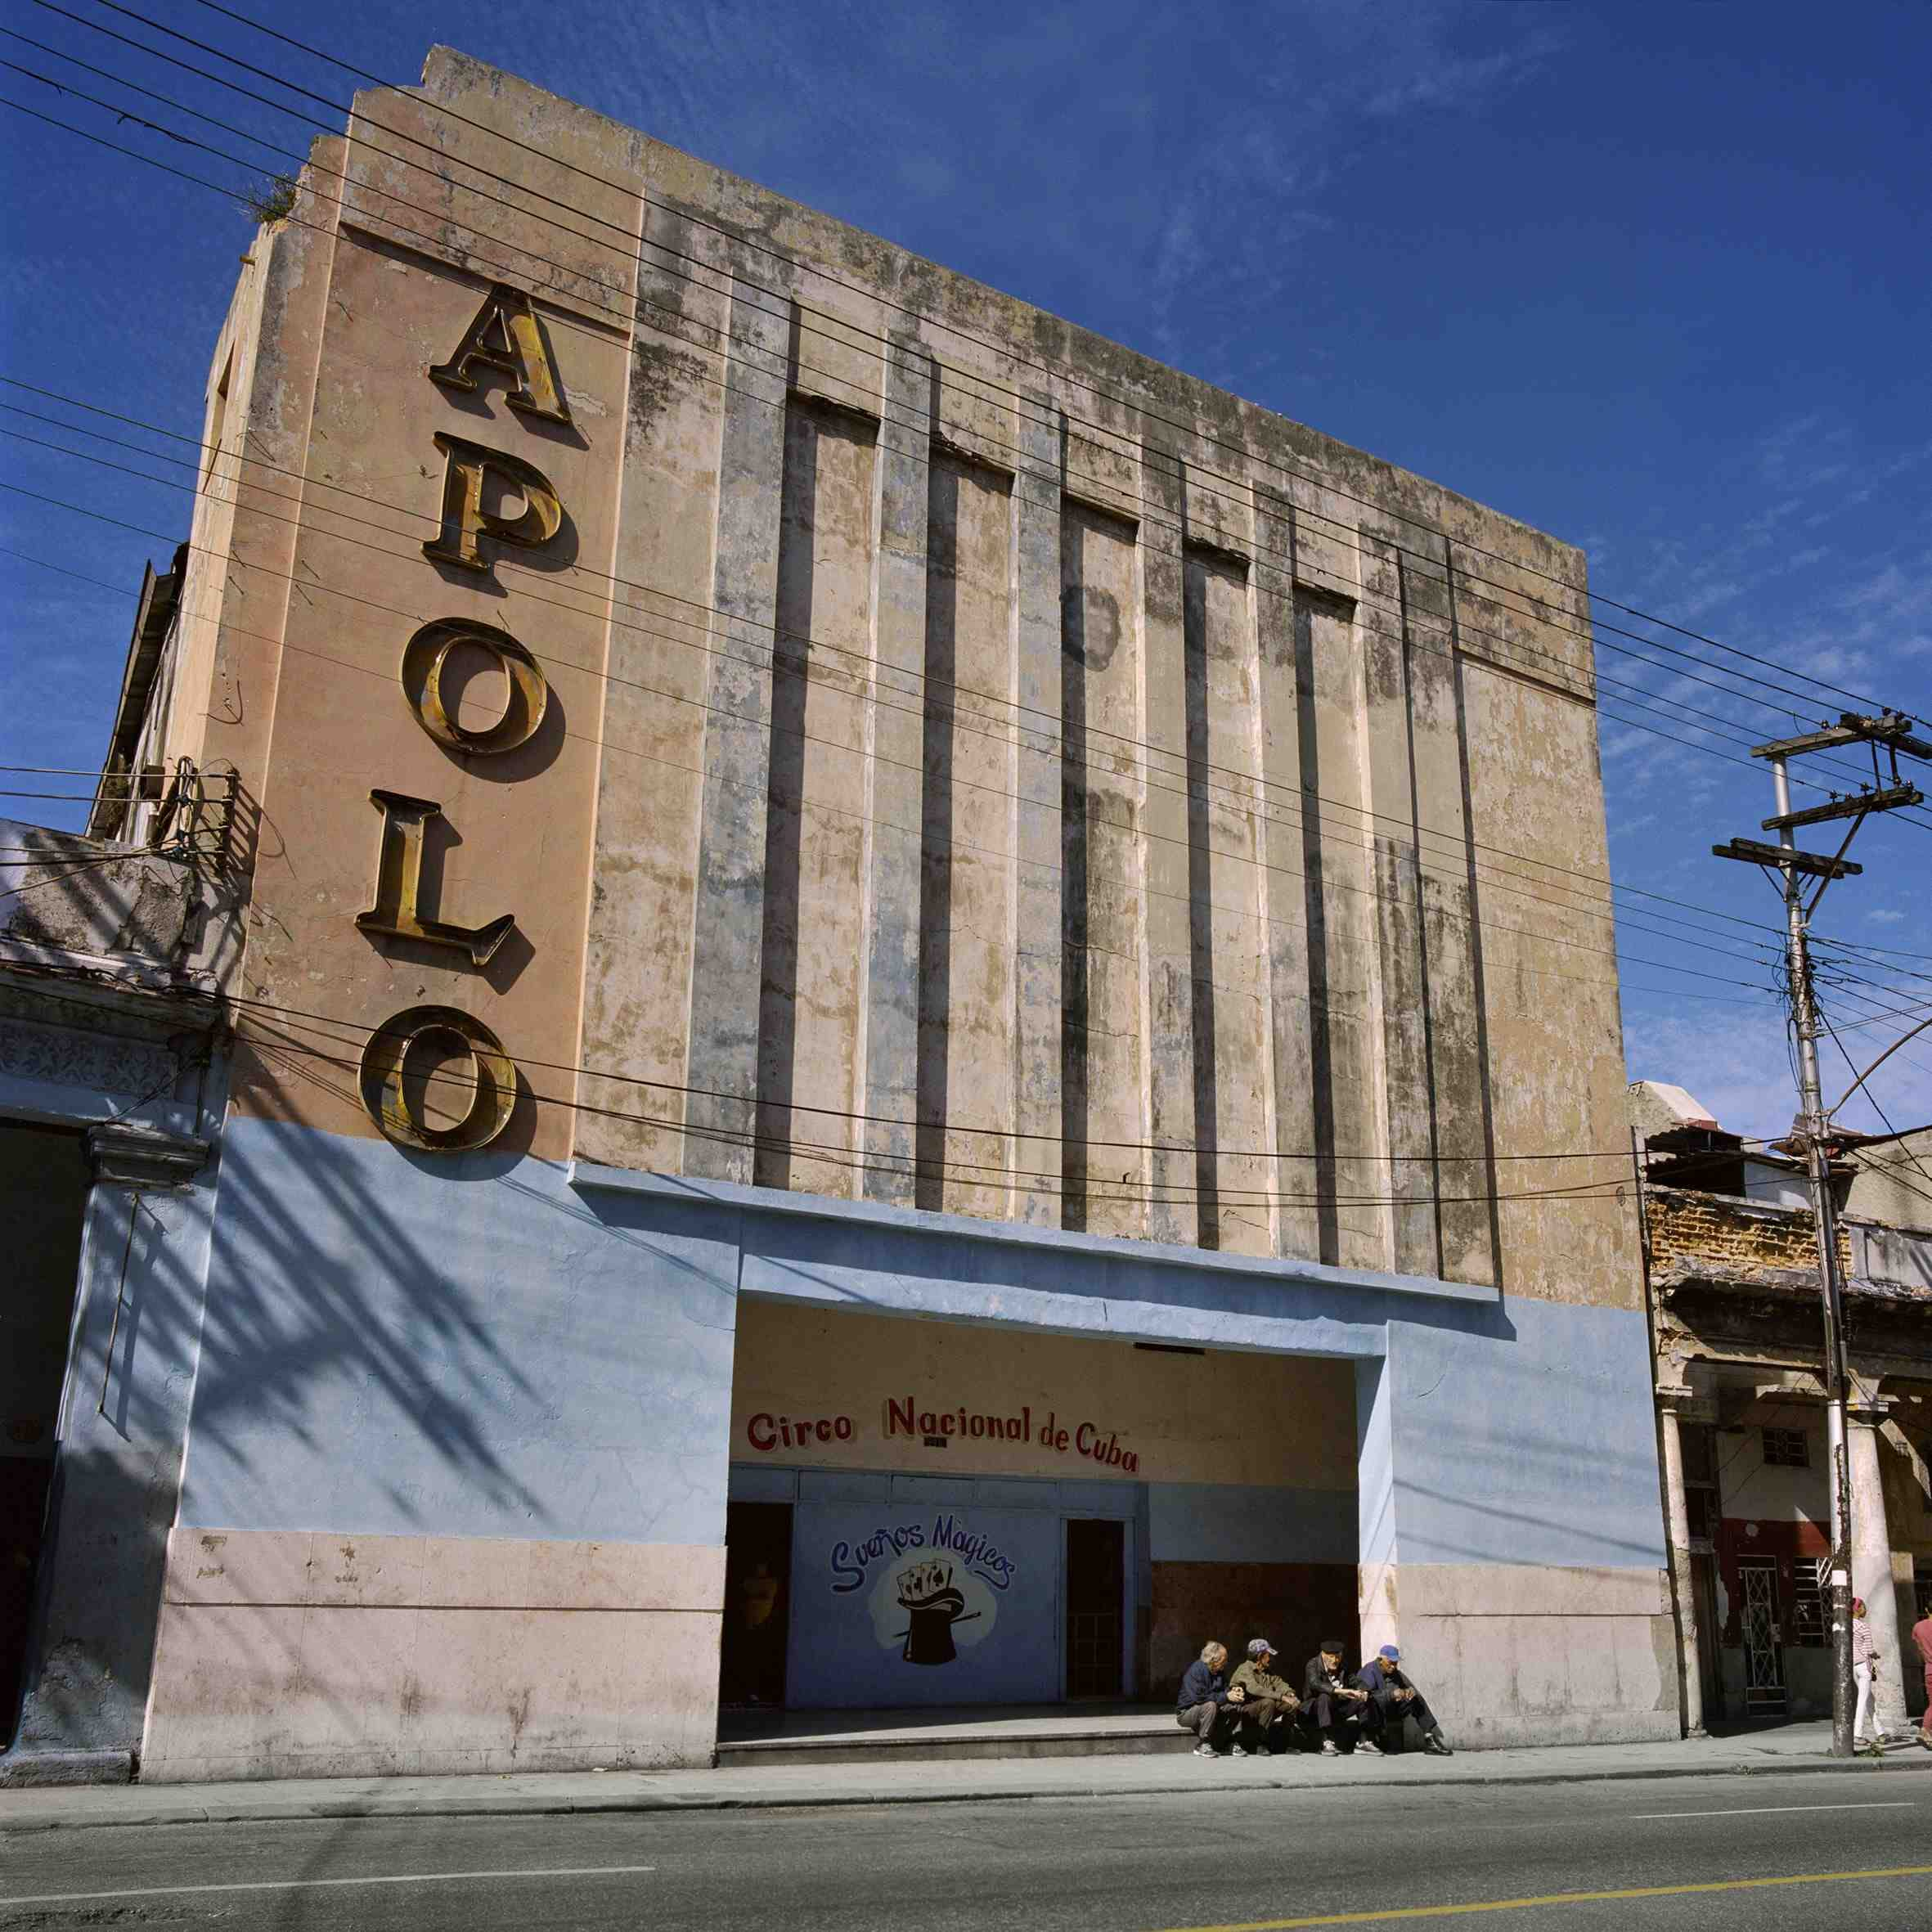 Over time, most of the movie theatres have either been transformed or abandoned.